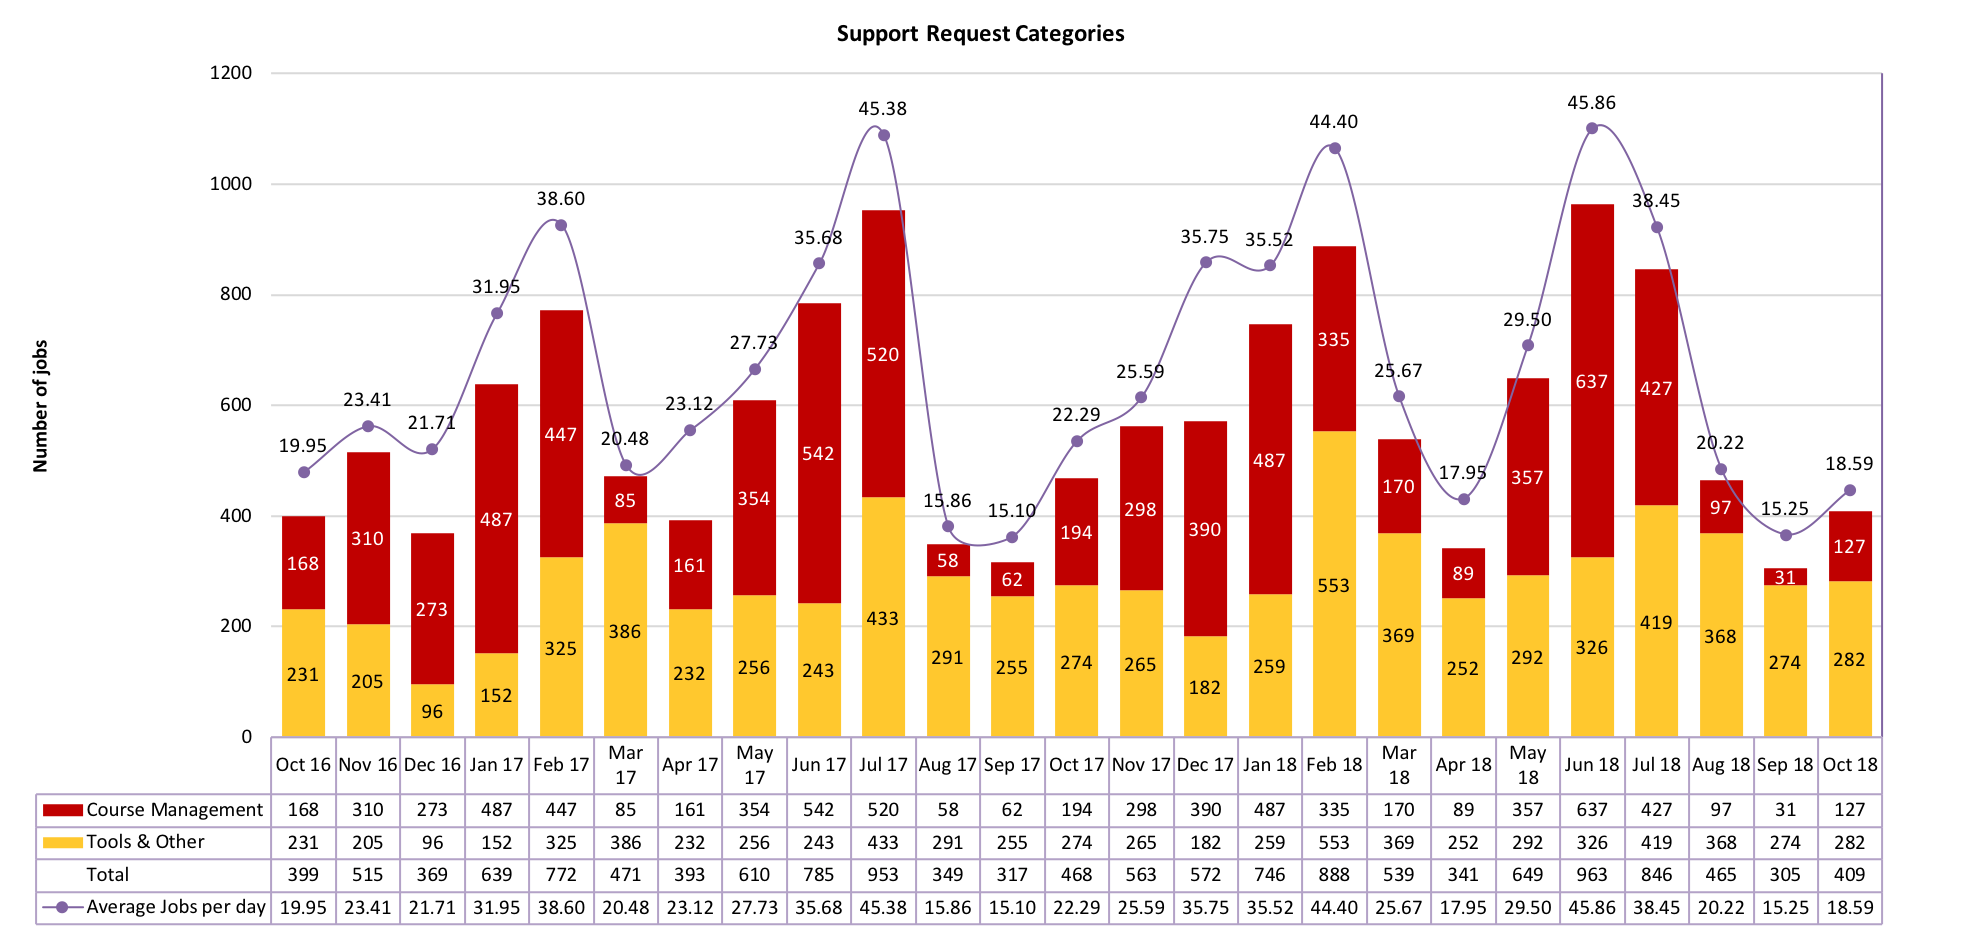 Chart of Support Request Categories from October 2016 to October 2018